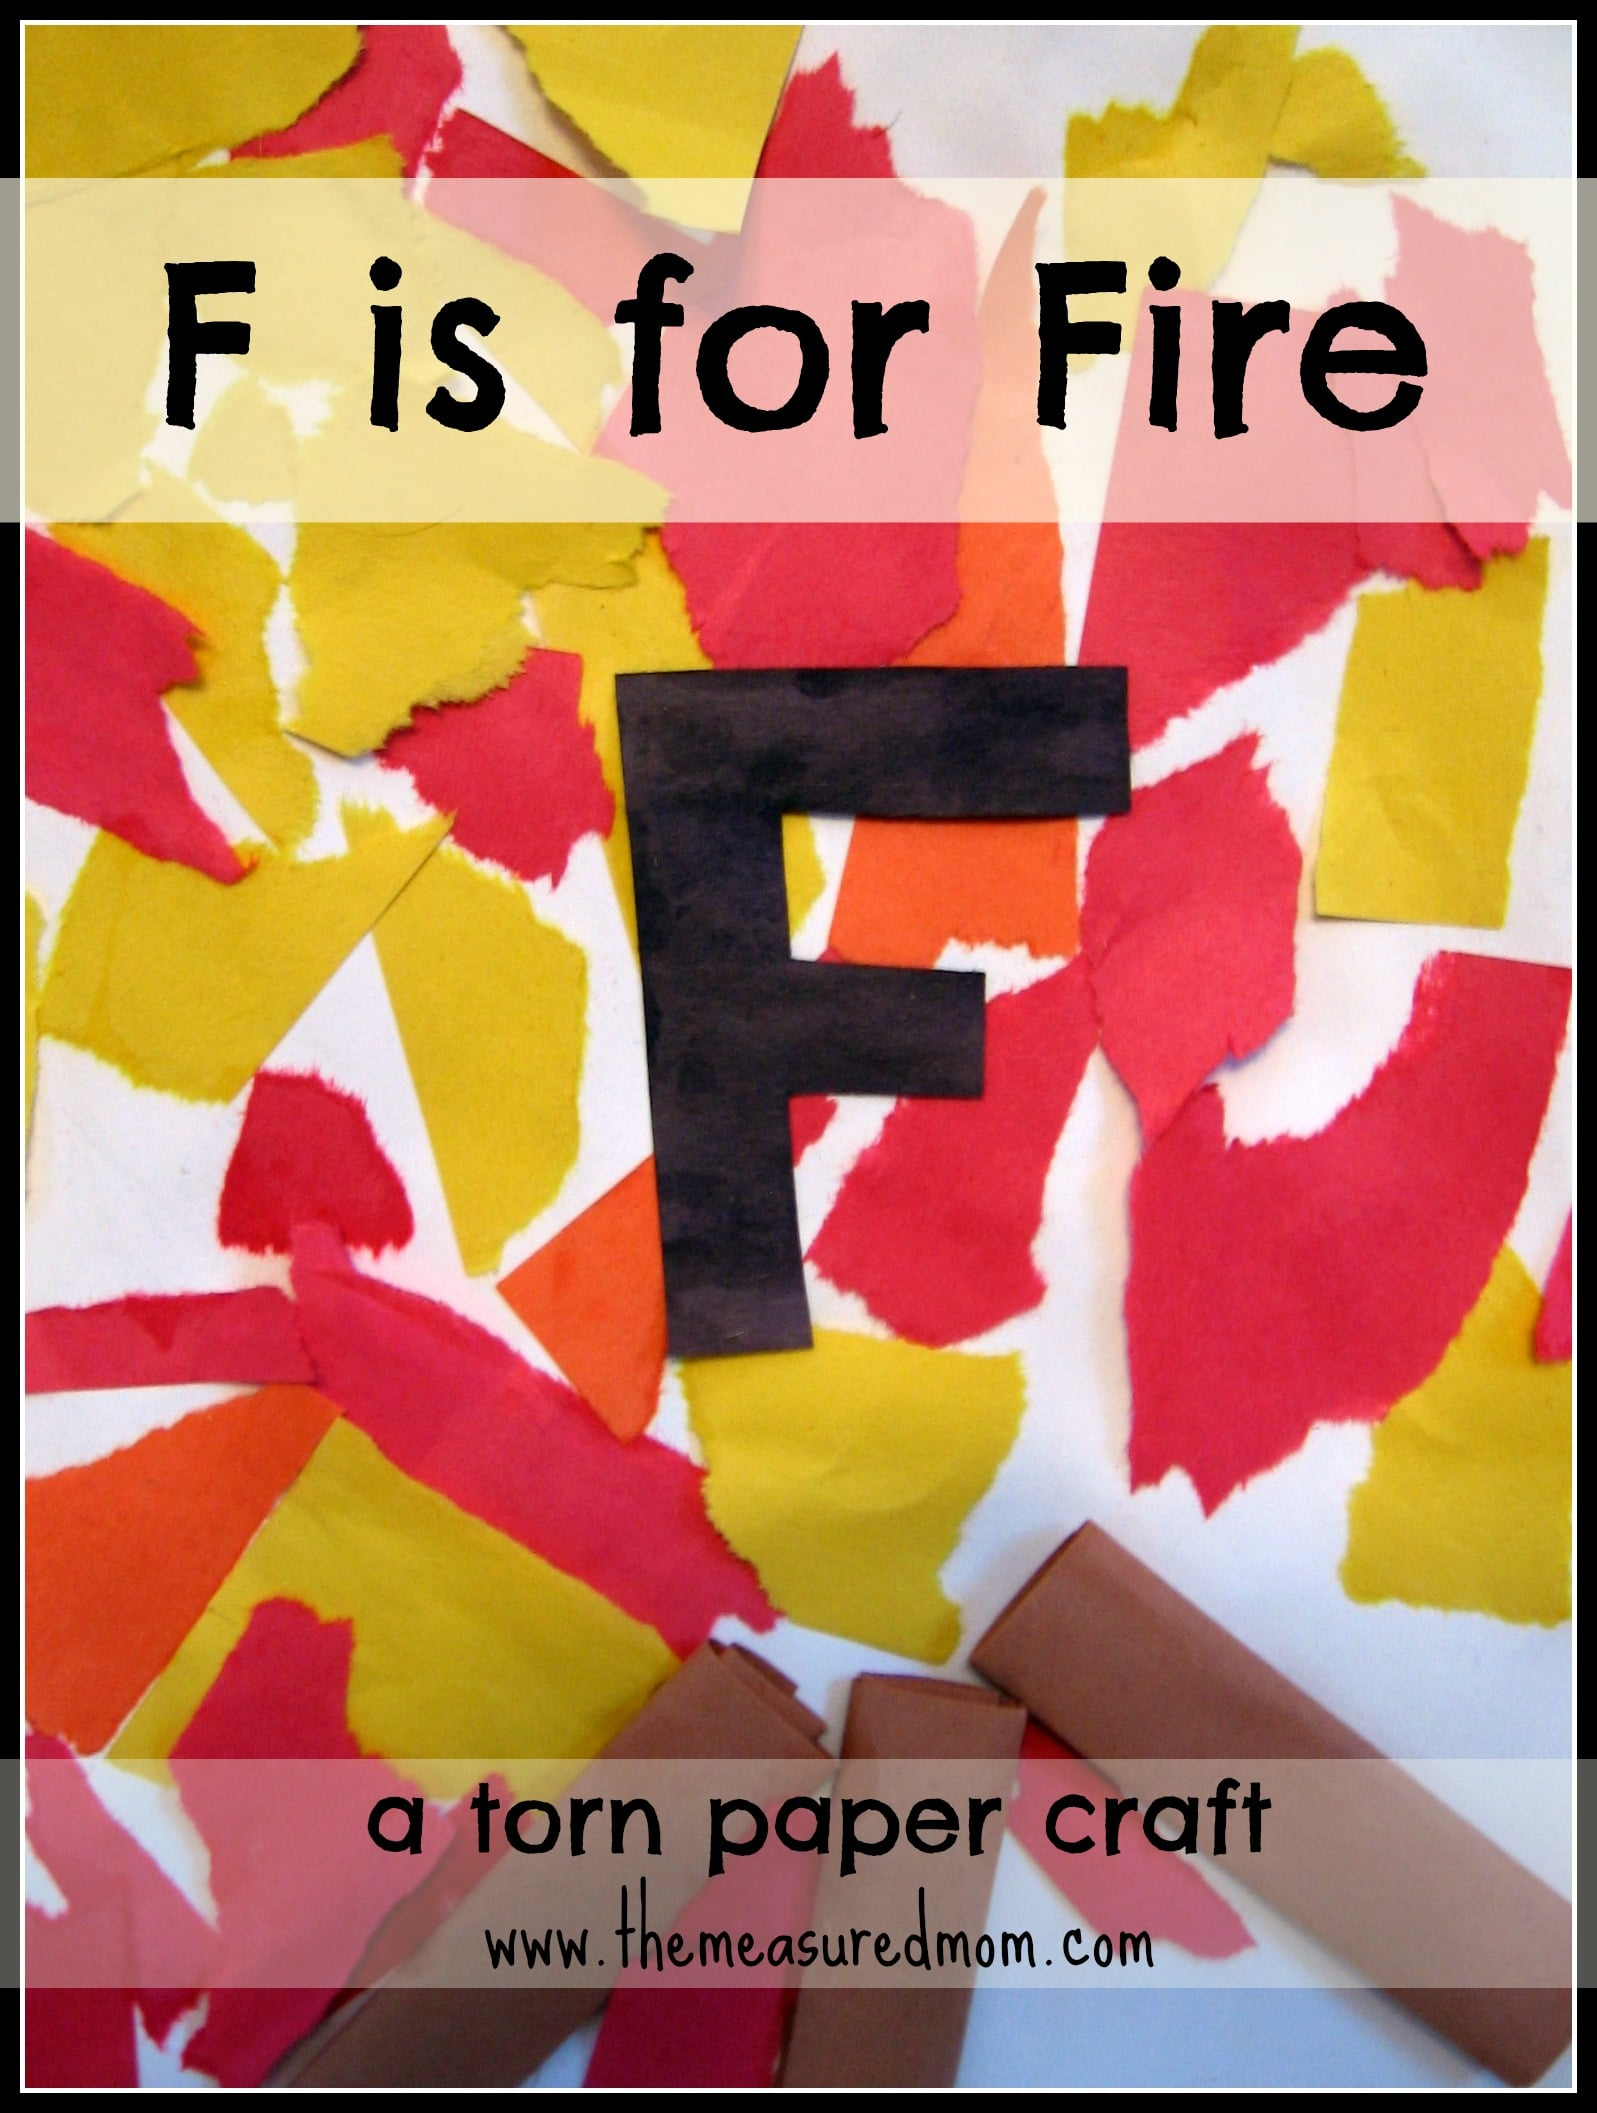 fire safety crafts f is for craft the measured 2020